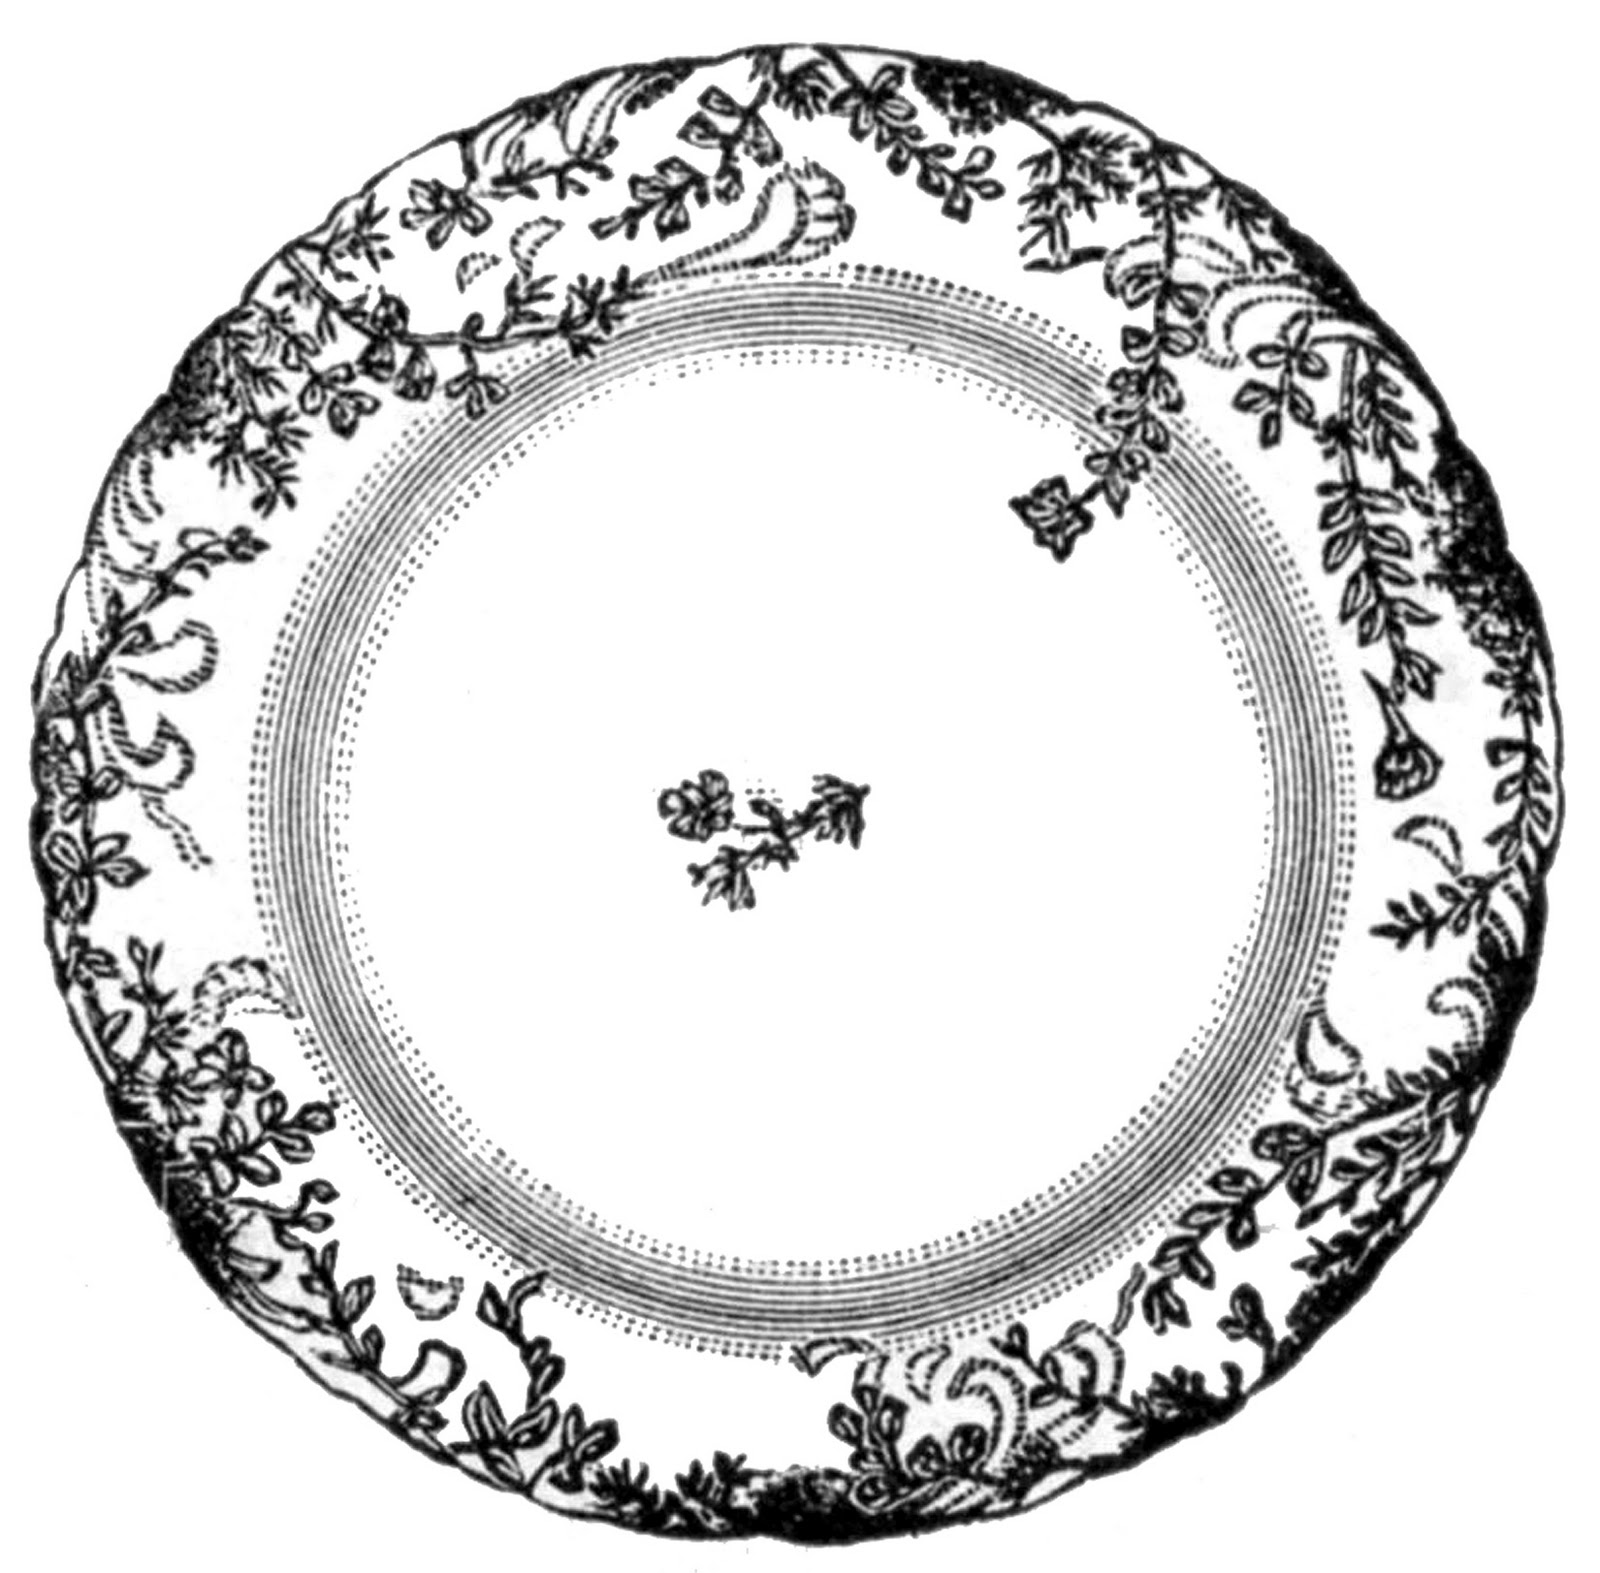 Vintage Clip Art - Antique China Plate - 4 Options - The Graphics Fairy